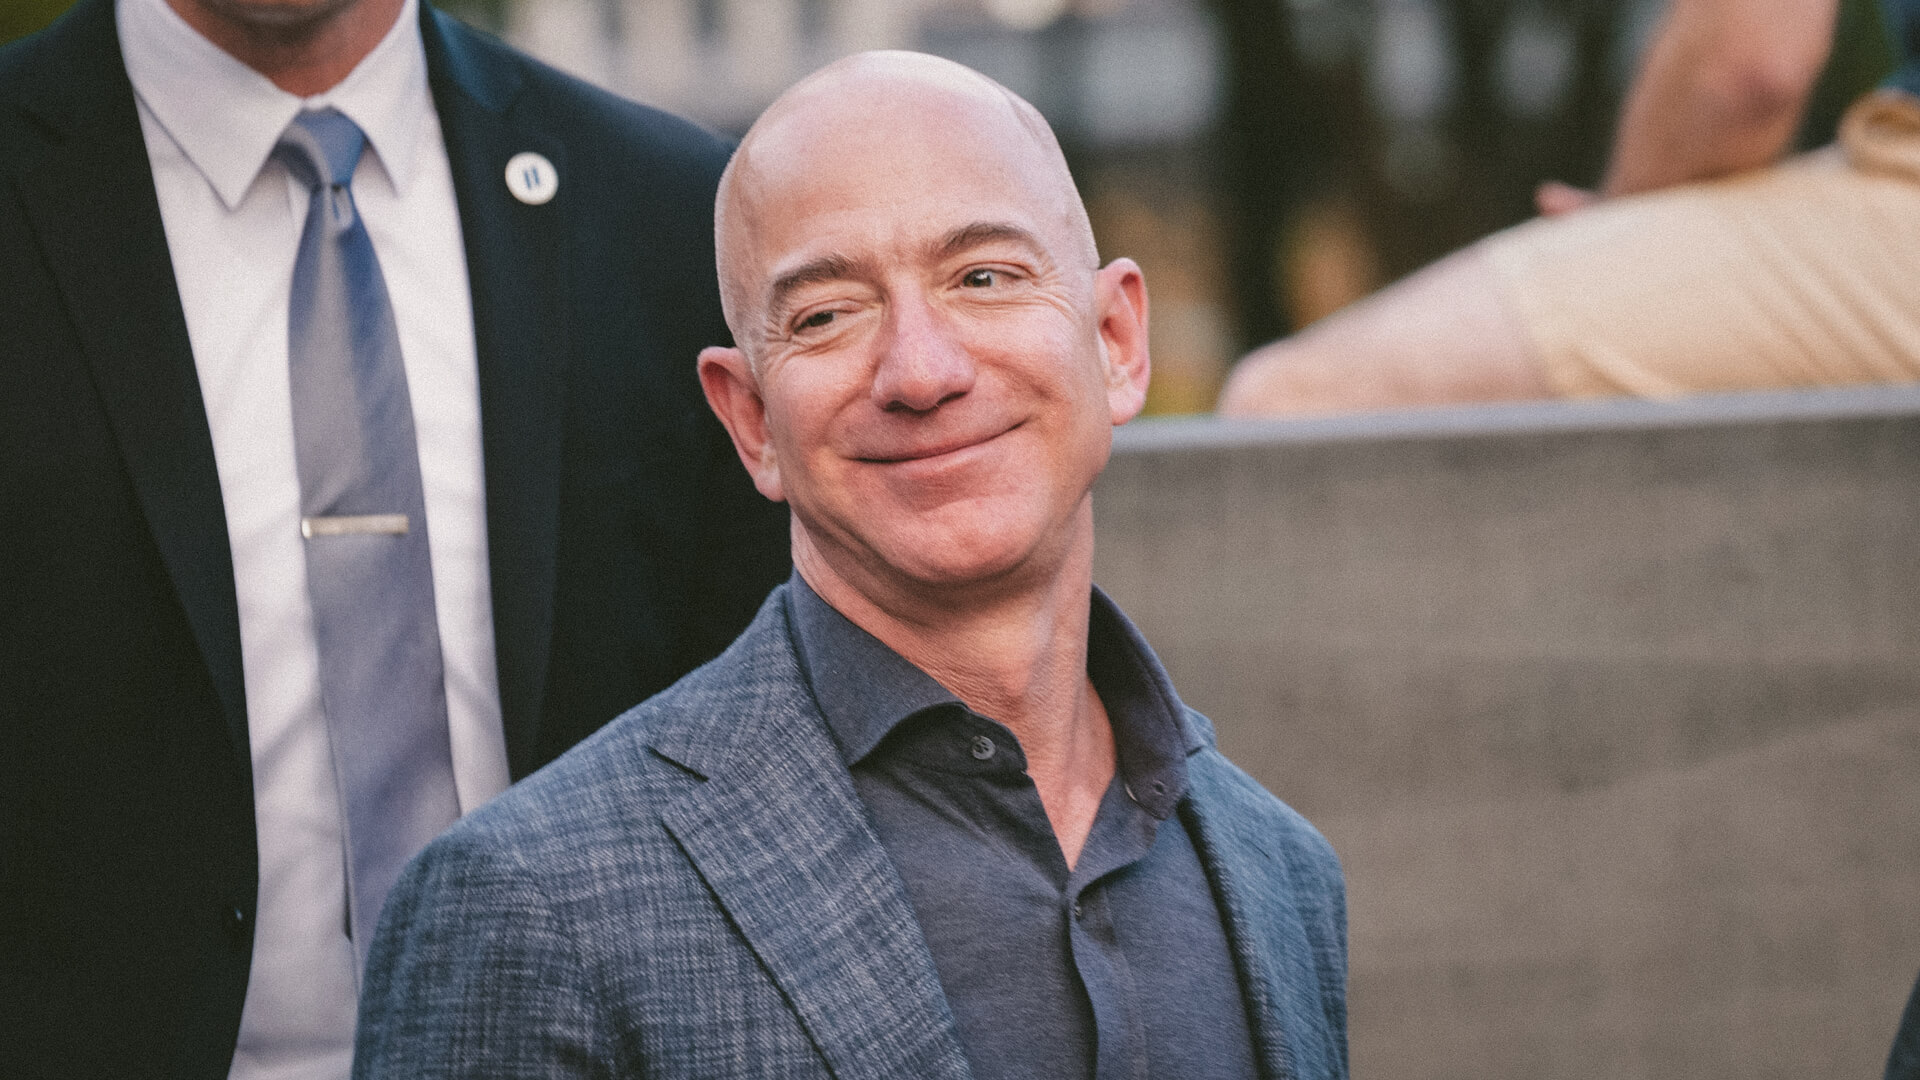 Jeff Bezos and 14 Other Wealthy People & Families Chipping In To Fund Education